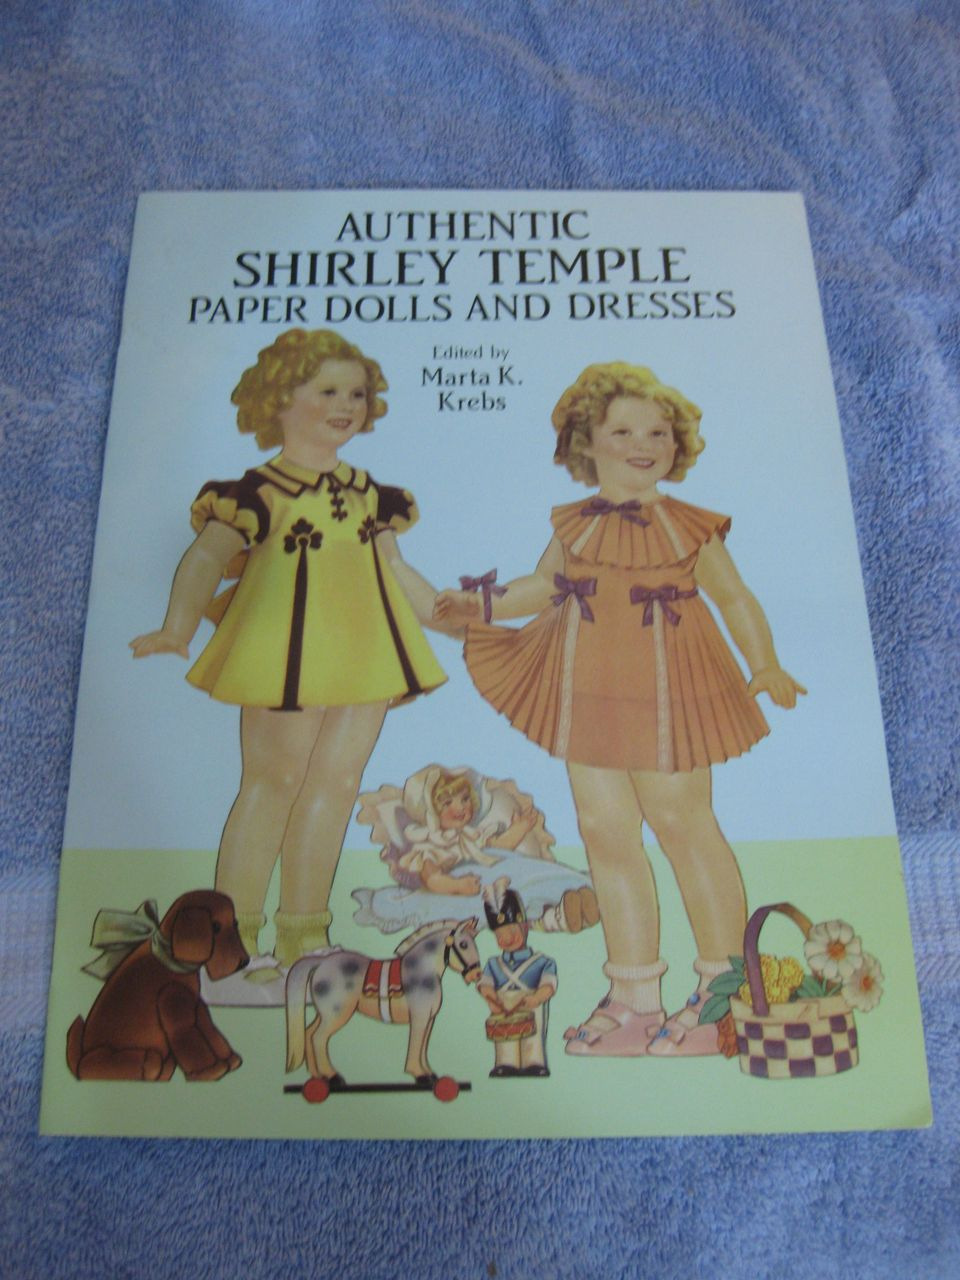 Original Shirley Temple Paper Dolls in full color,Classic Shirley Temple Paper Dolls in full color,   Authentic Shirley Temple Paper Dolls and Dresses